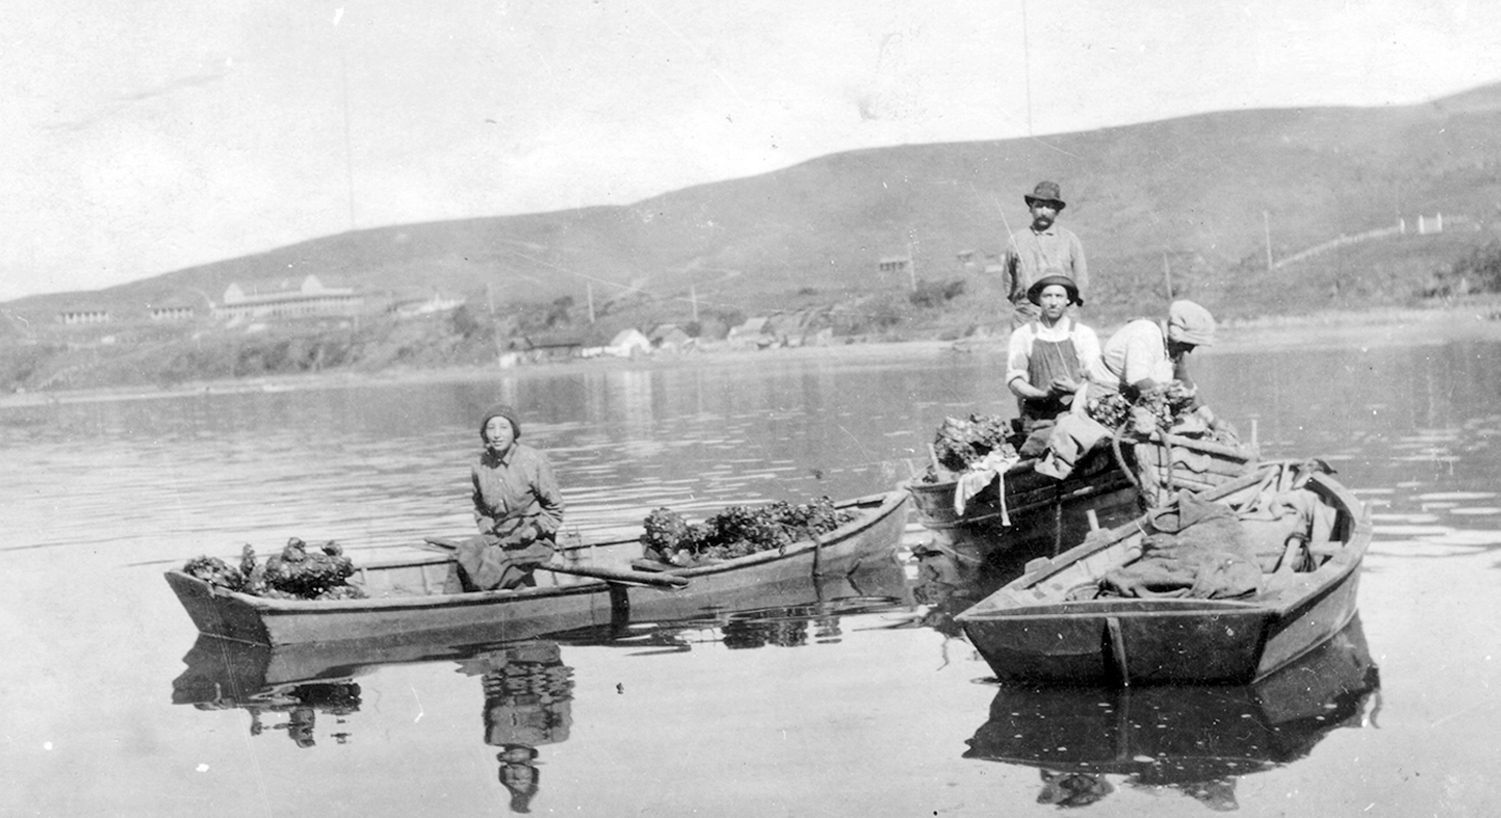 Members of the well-known Smith family of fishermen, harvesting oysters in Tomales Bay, circa 1917. The Marconi Wireless Telegraph Company is just visible in the distance   at left.